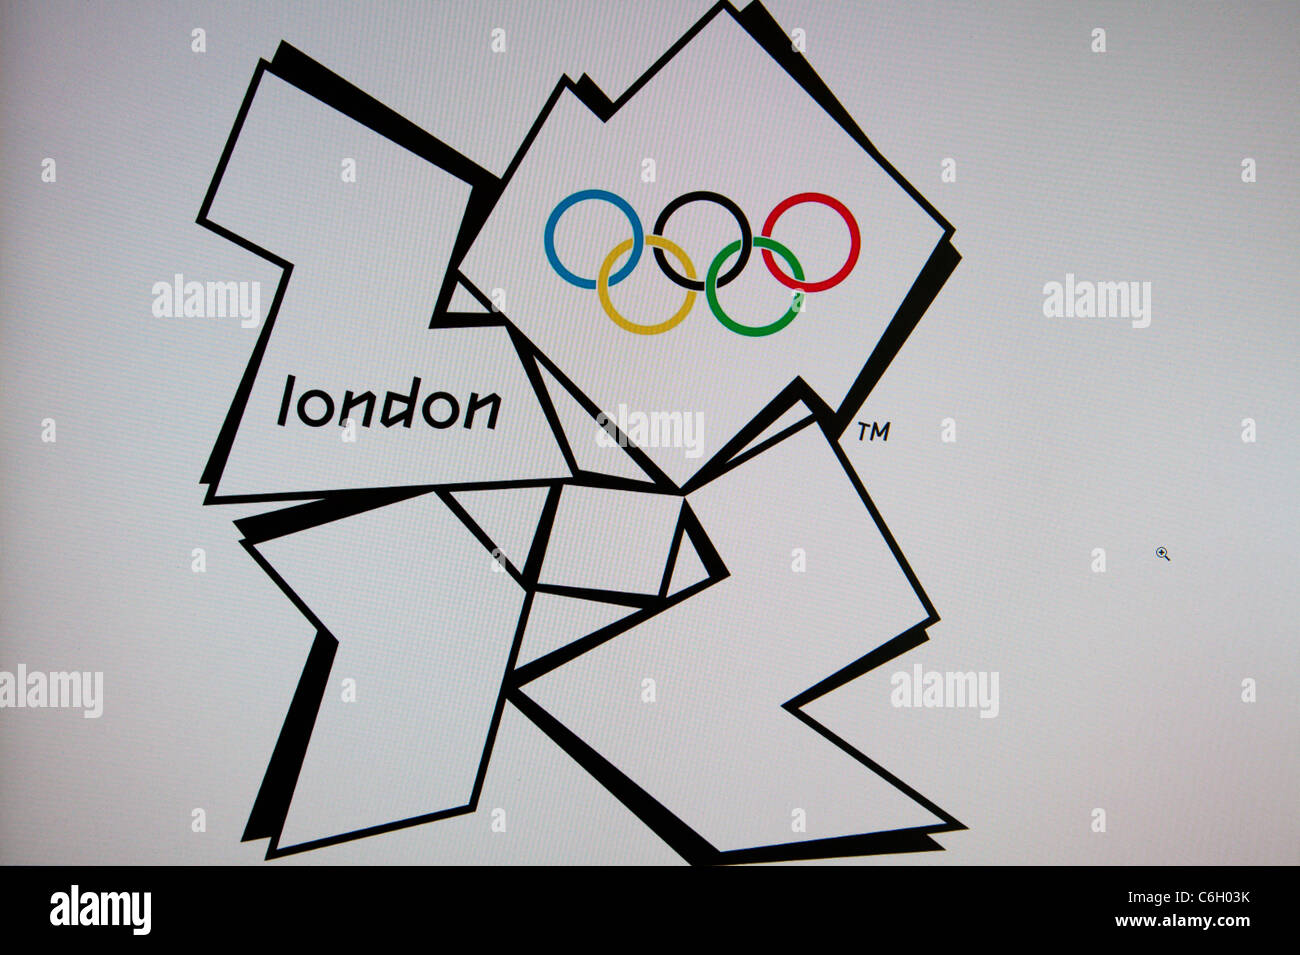 Internet land computer graphic of London Olympics symbol  logo The jagged emblem, based on the date 2012, comes - Stock Image